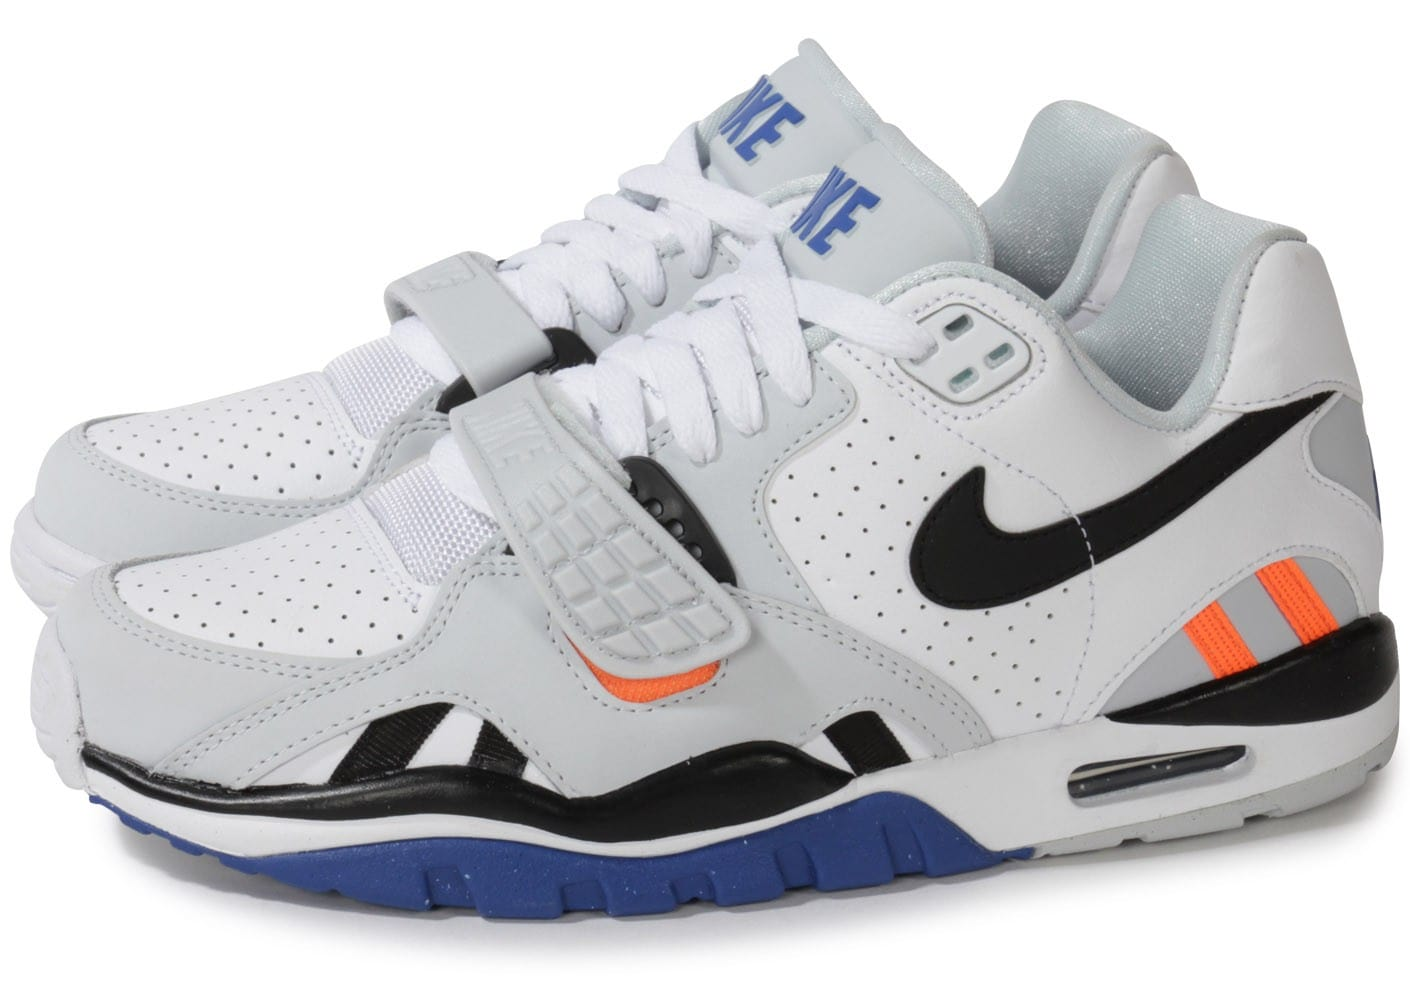 best loved f92f5 b565b Cliquez pour zoomer Chaussures Nike Air Trainer Sc Ii Low Blanche vue  extérieure ...